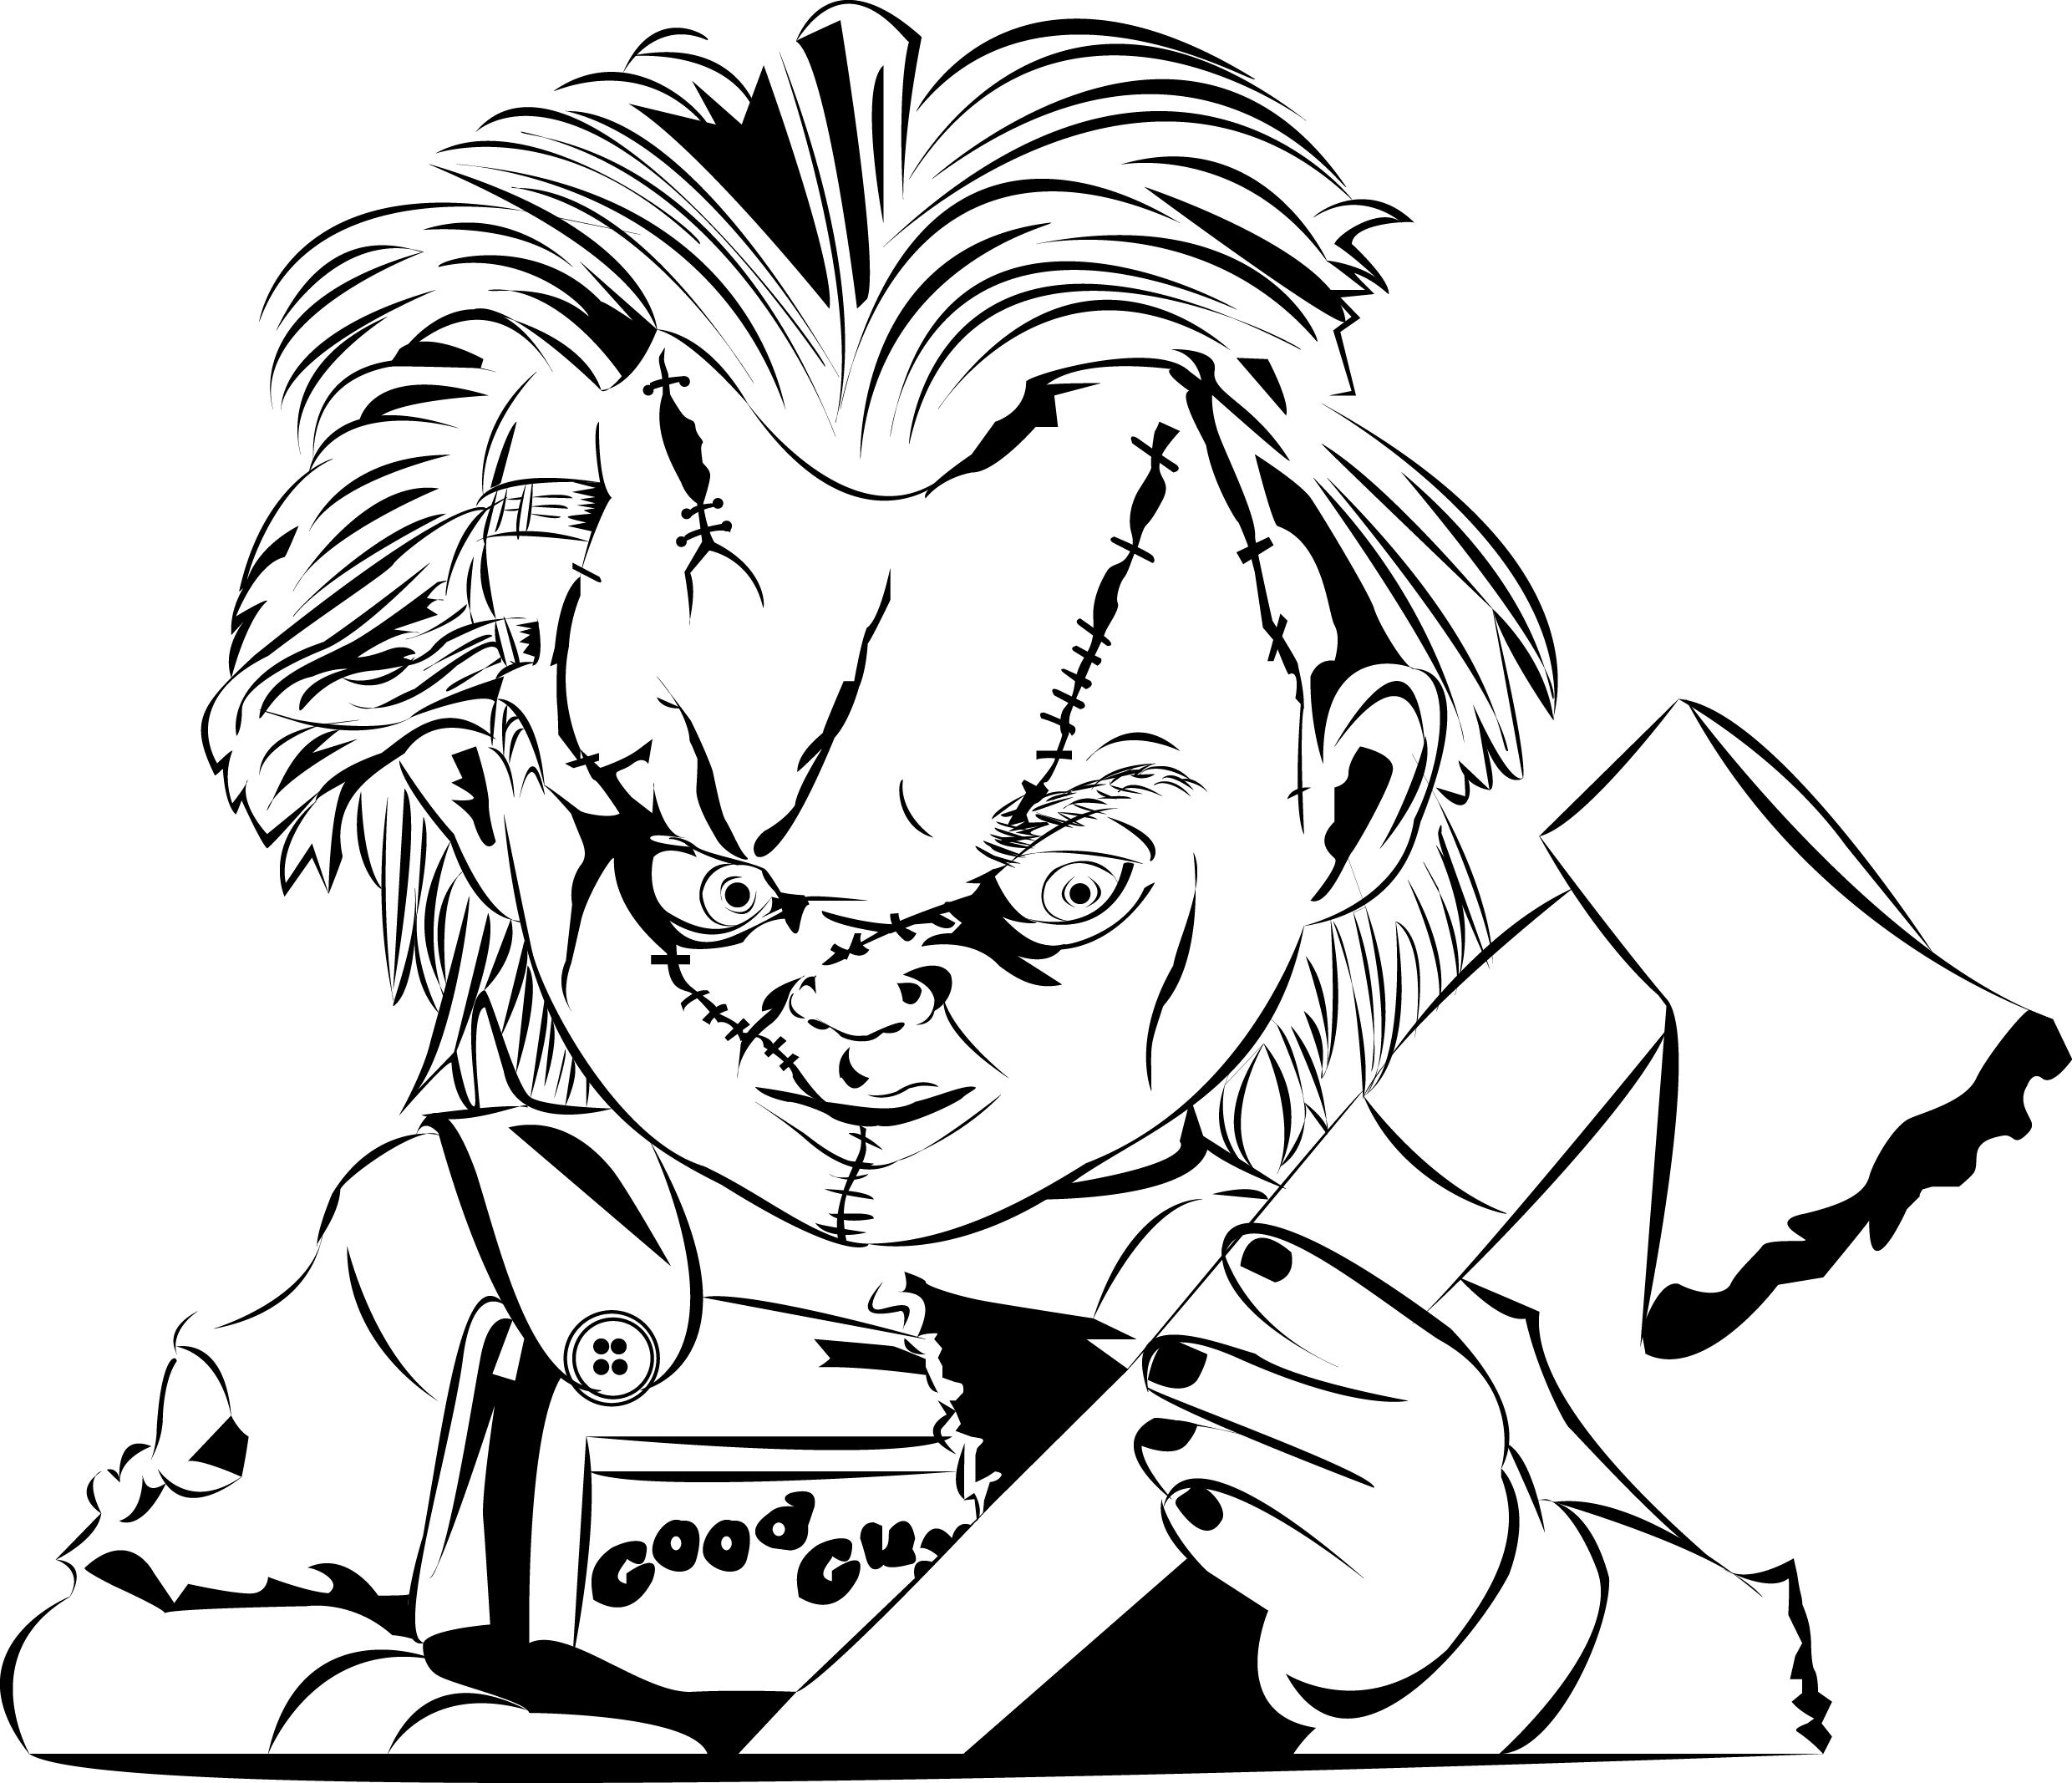 Chucky Scary Drawings Halloween Coloring Halloween Coloring Pages